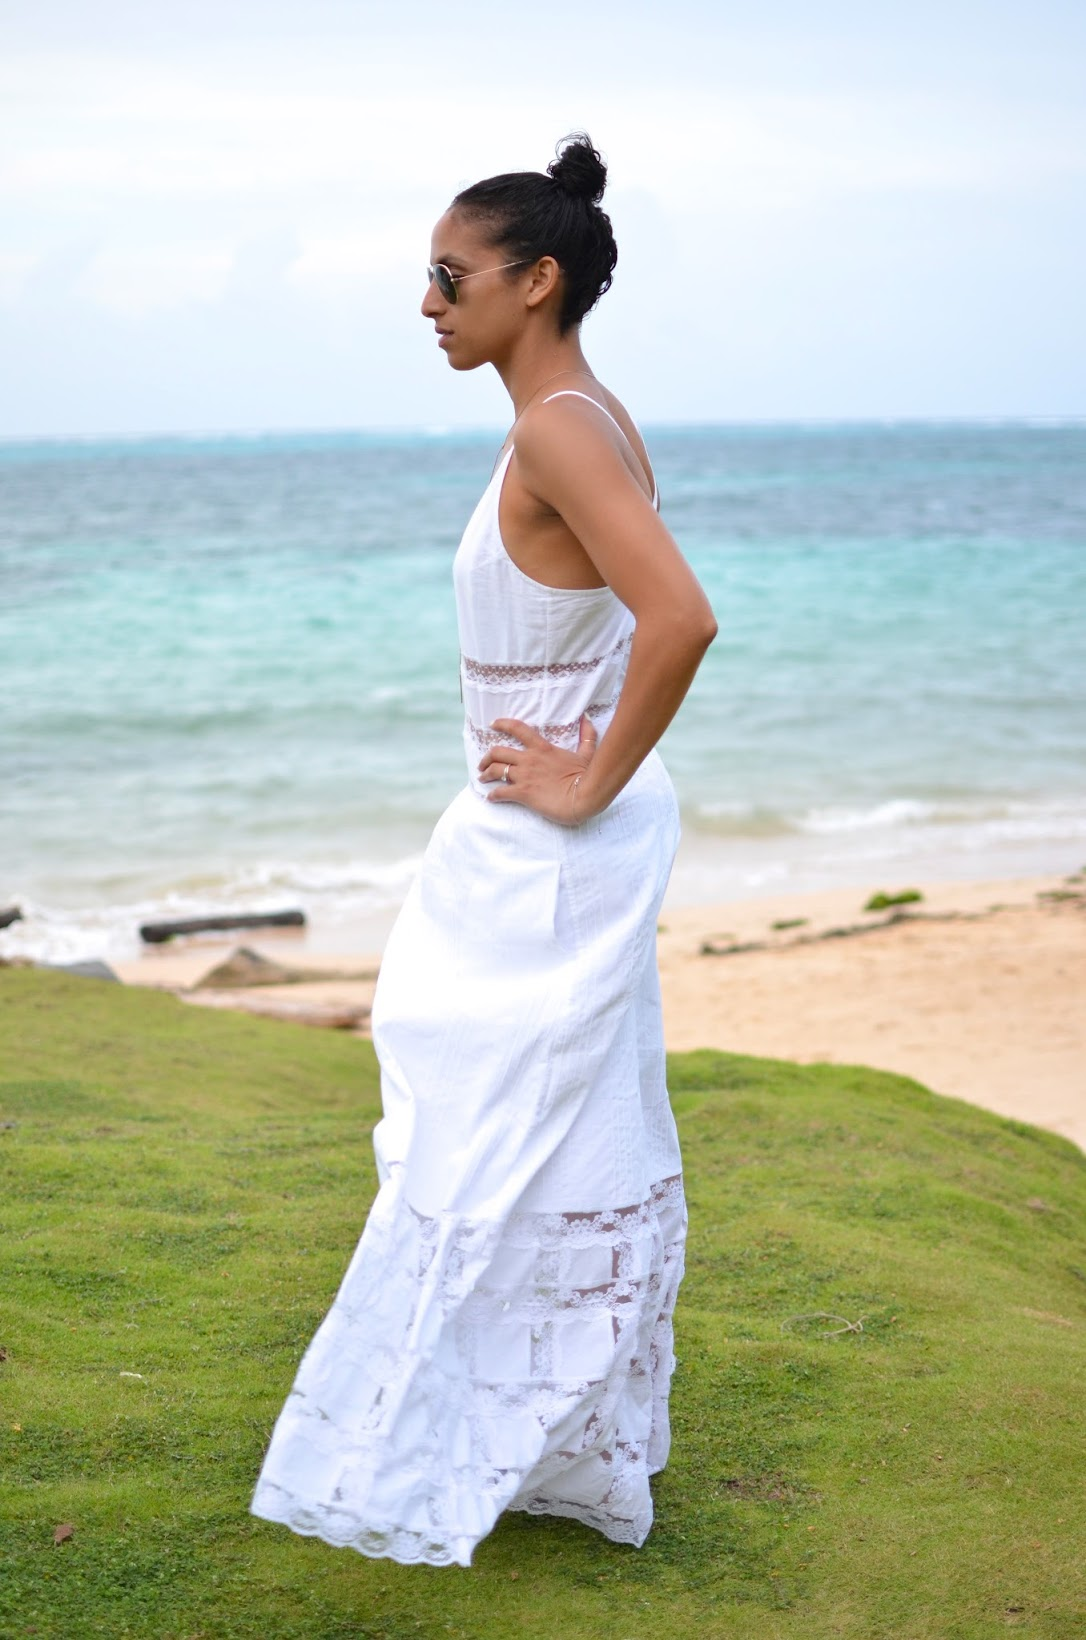 Yemaya Island Hideaway and Spa, Little Corn Island, Nicaragua, Candela NYC, White maxi dress, Lace maxi dress, Candela NYC Elsa dress, vacation style, what to wear in Nicaragua, what to wear on vacation, lariat